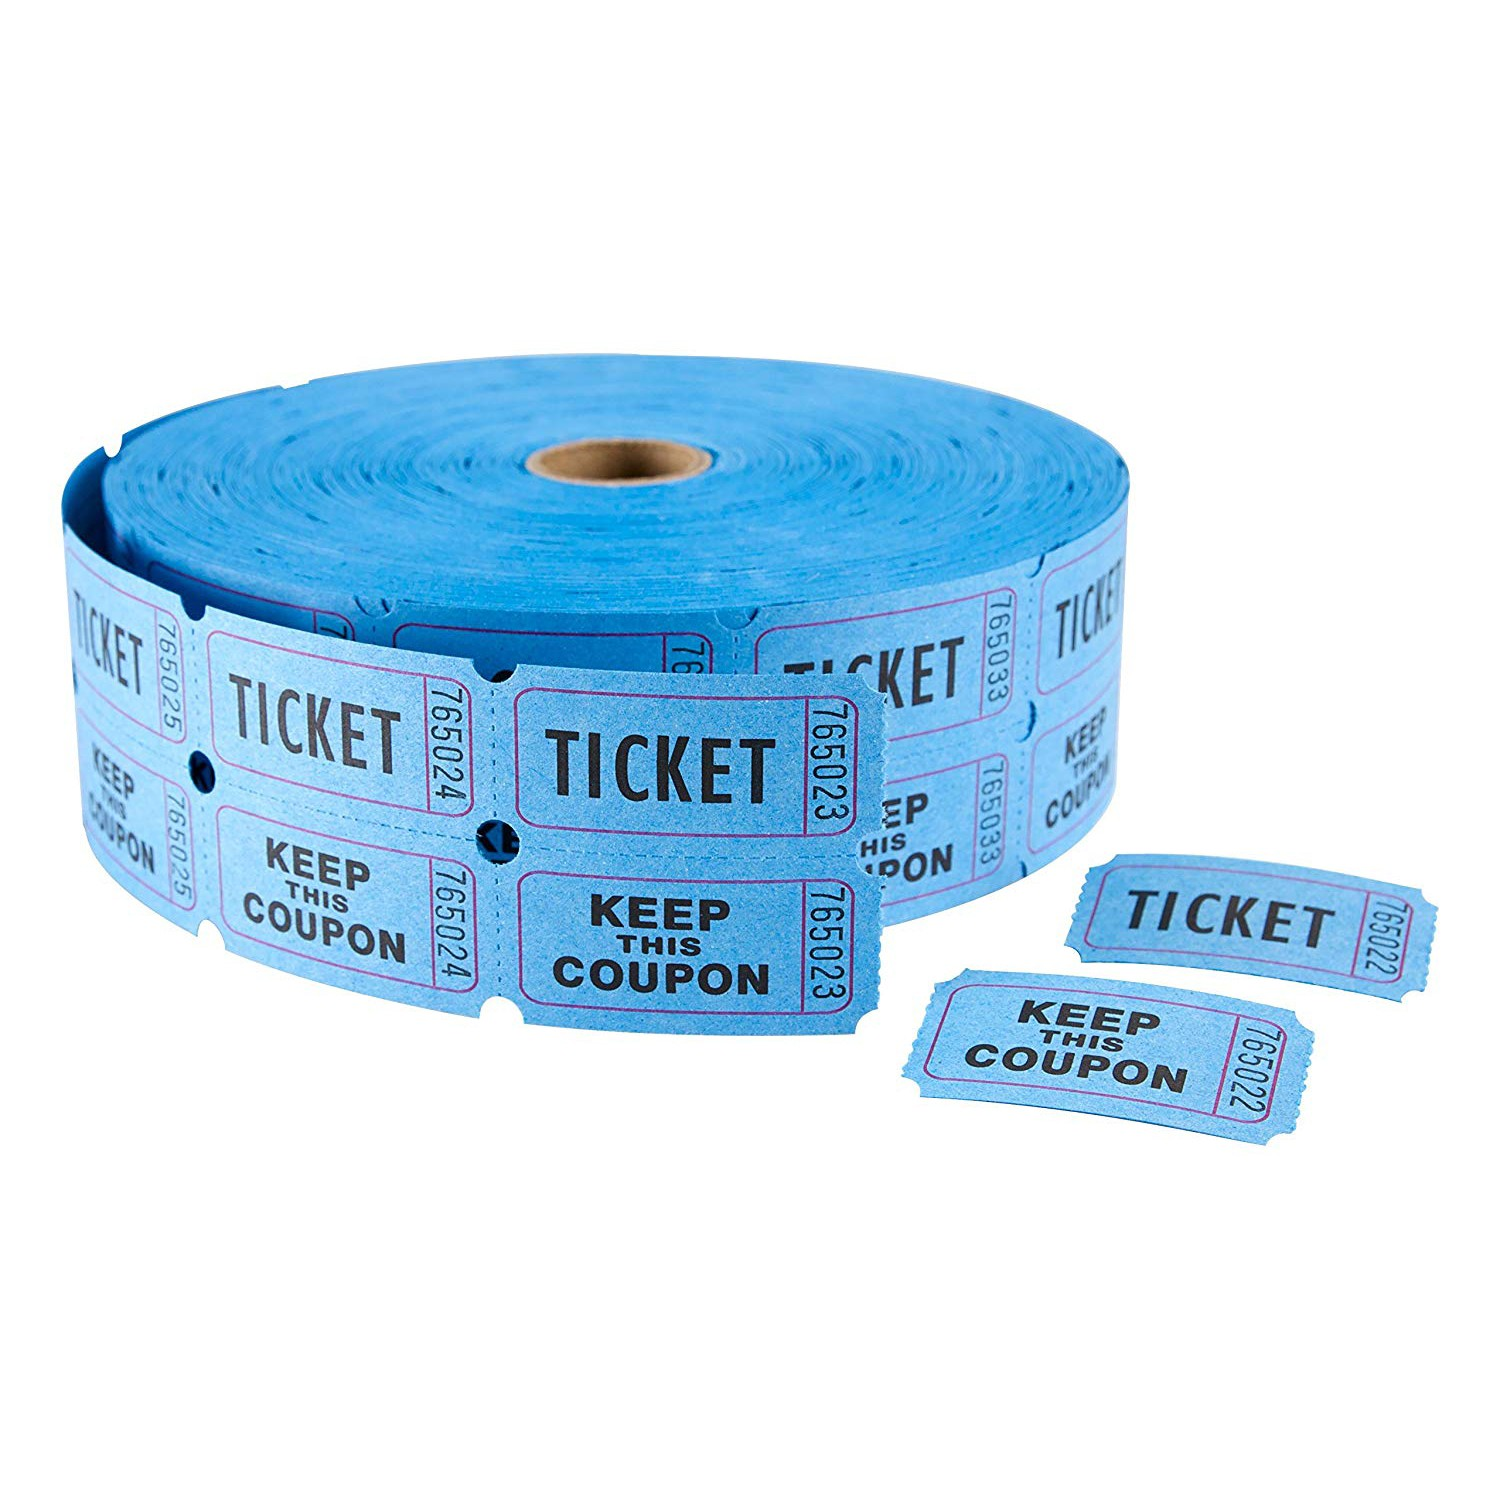 """TOTALPACK® 2 x 1"""" Double Coupon Tickets - """"Keep This Coupon"""", Blue 2000 Tickets per Roll"""